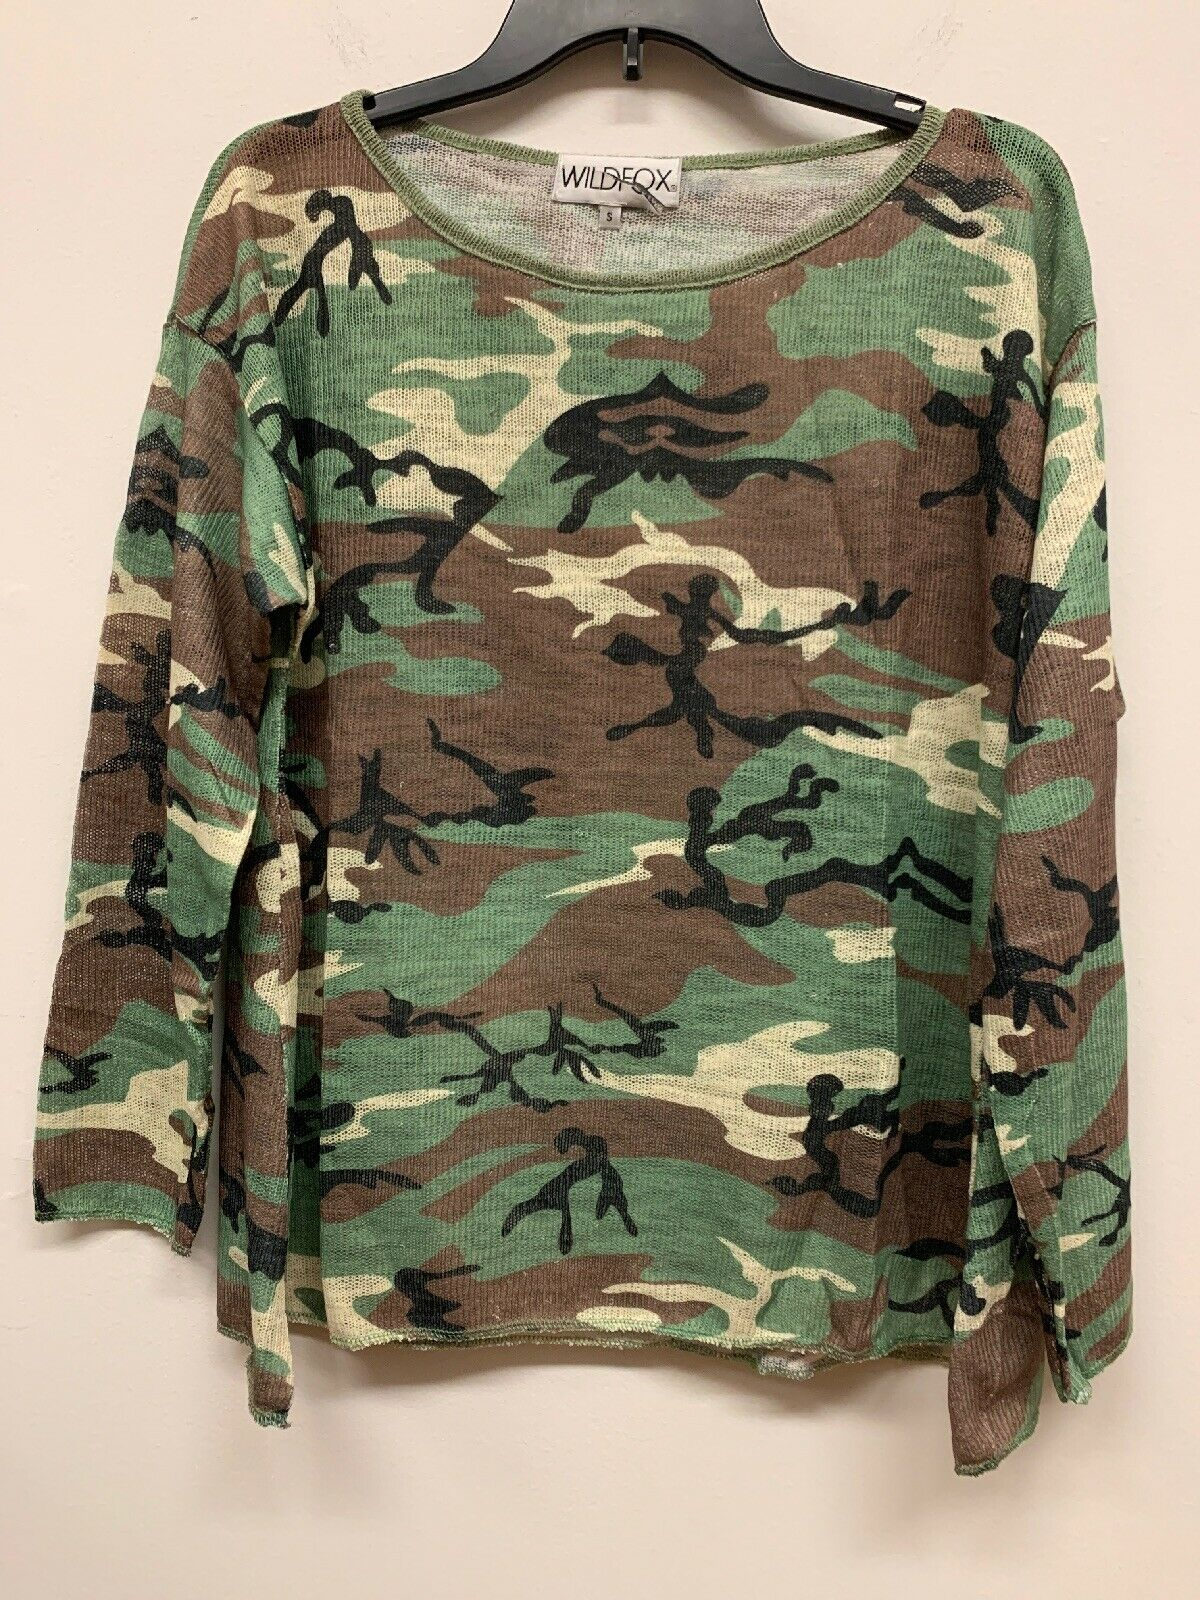 NEW Wildfox CAMO army green print Baggy Beach sweater Jumper Sweatshirt brown